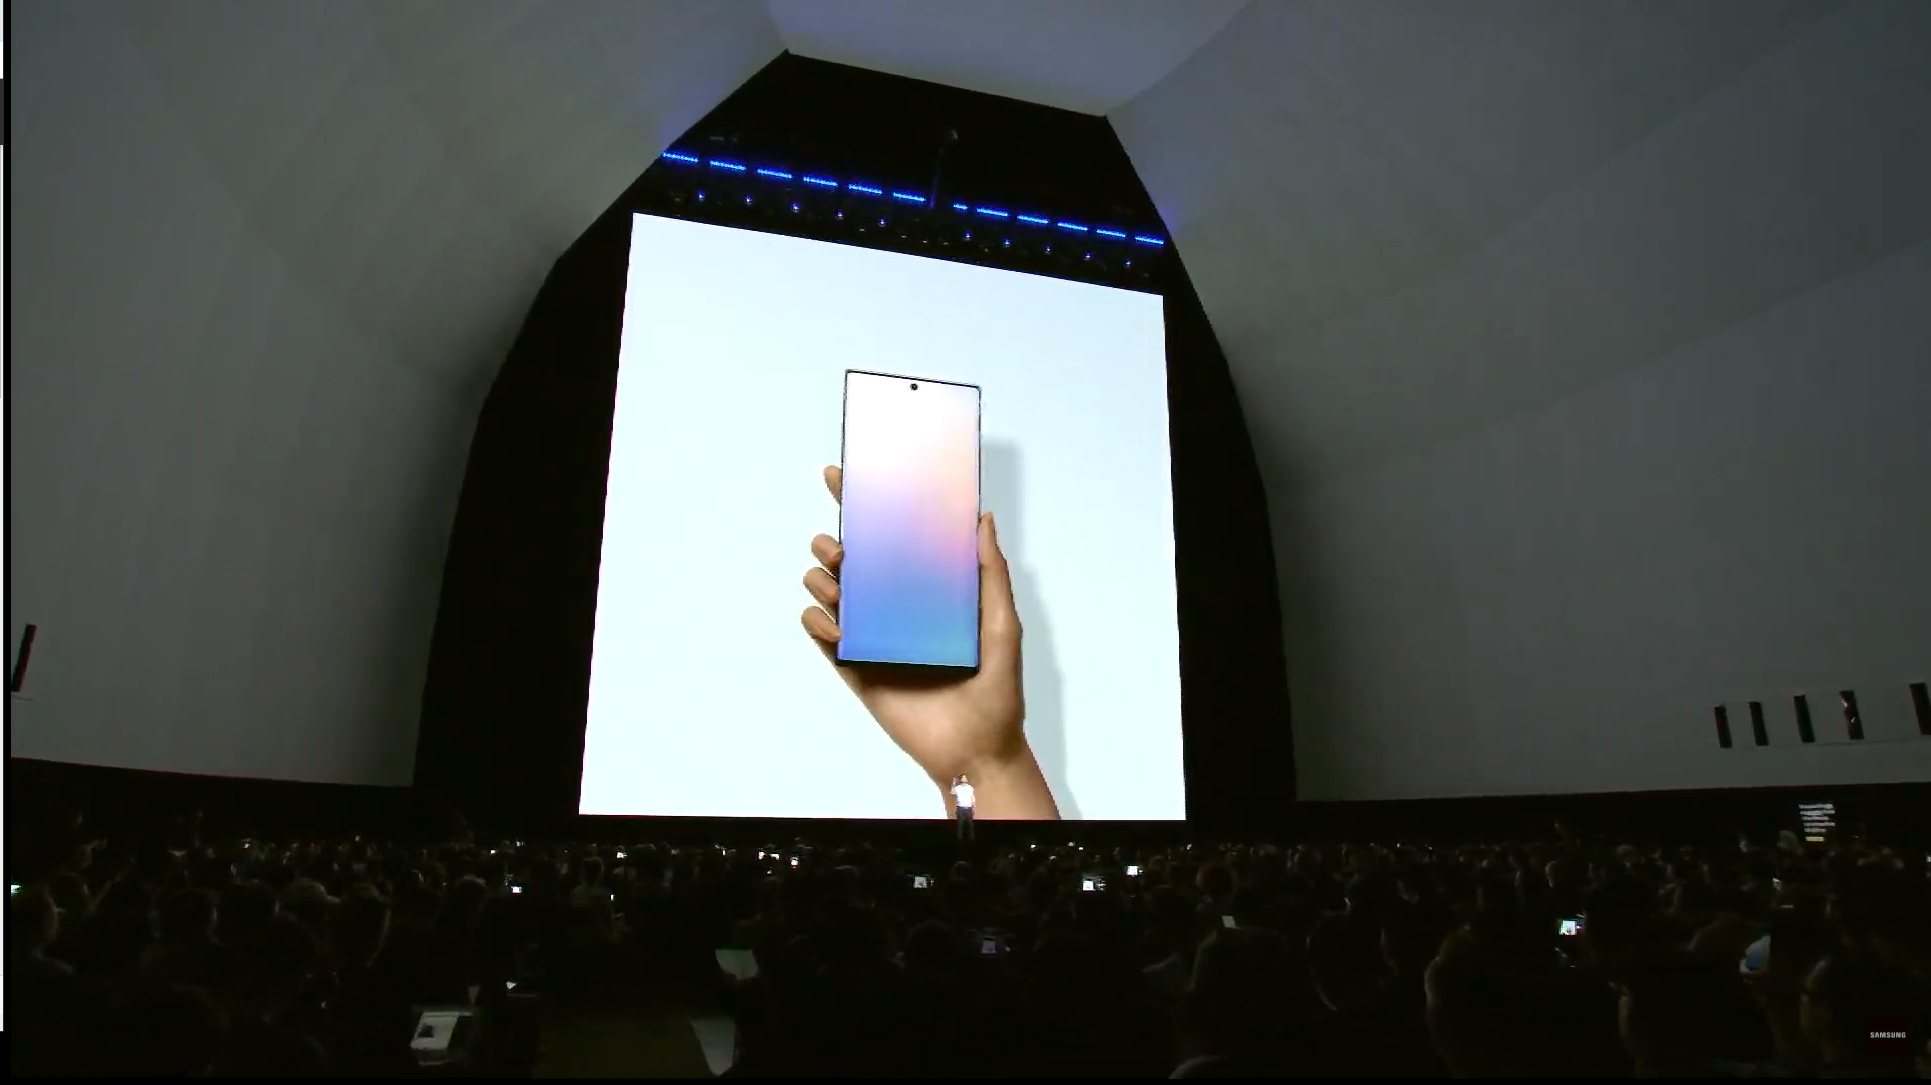 Galaxy Note 10+ unveiled during Galaxy Unpacked 2019